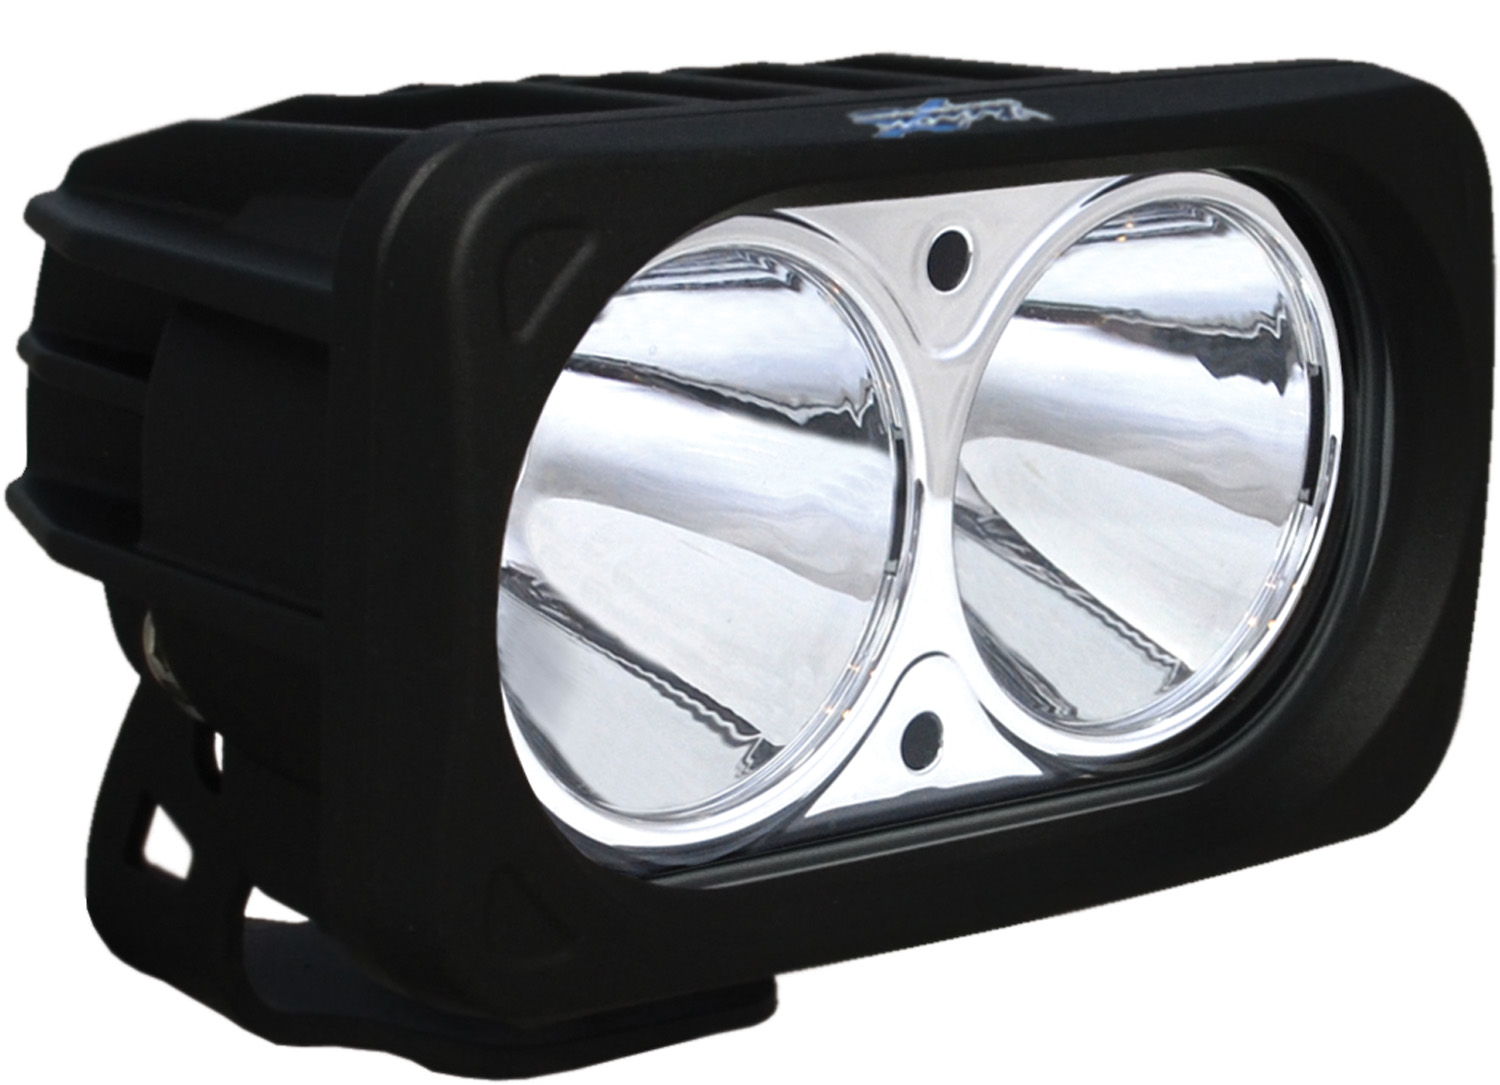 OPTIMUS SQUARE BLACK 2 10W LEDS 10° NARROW